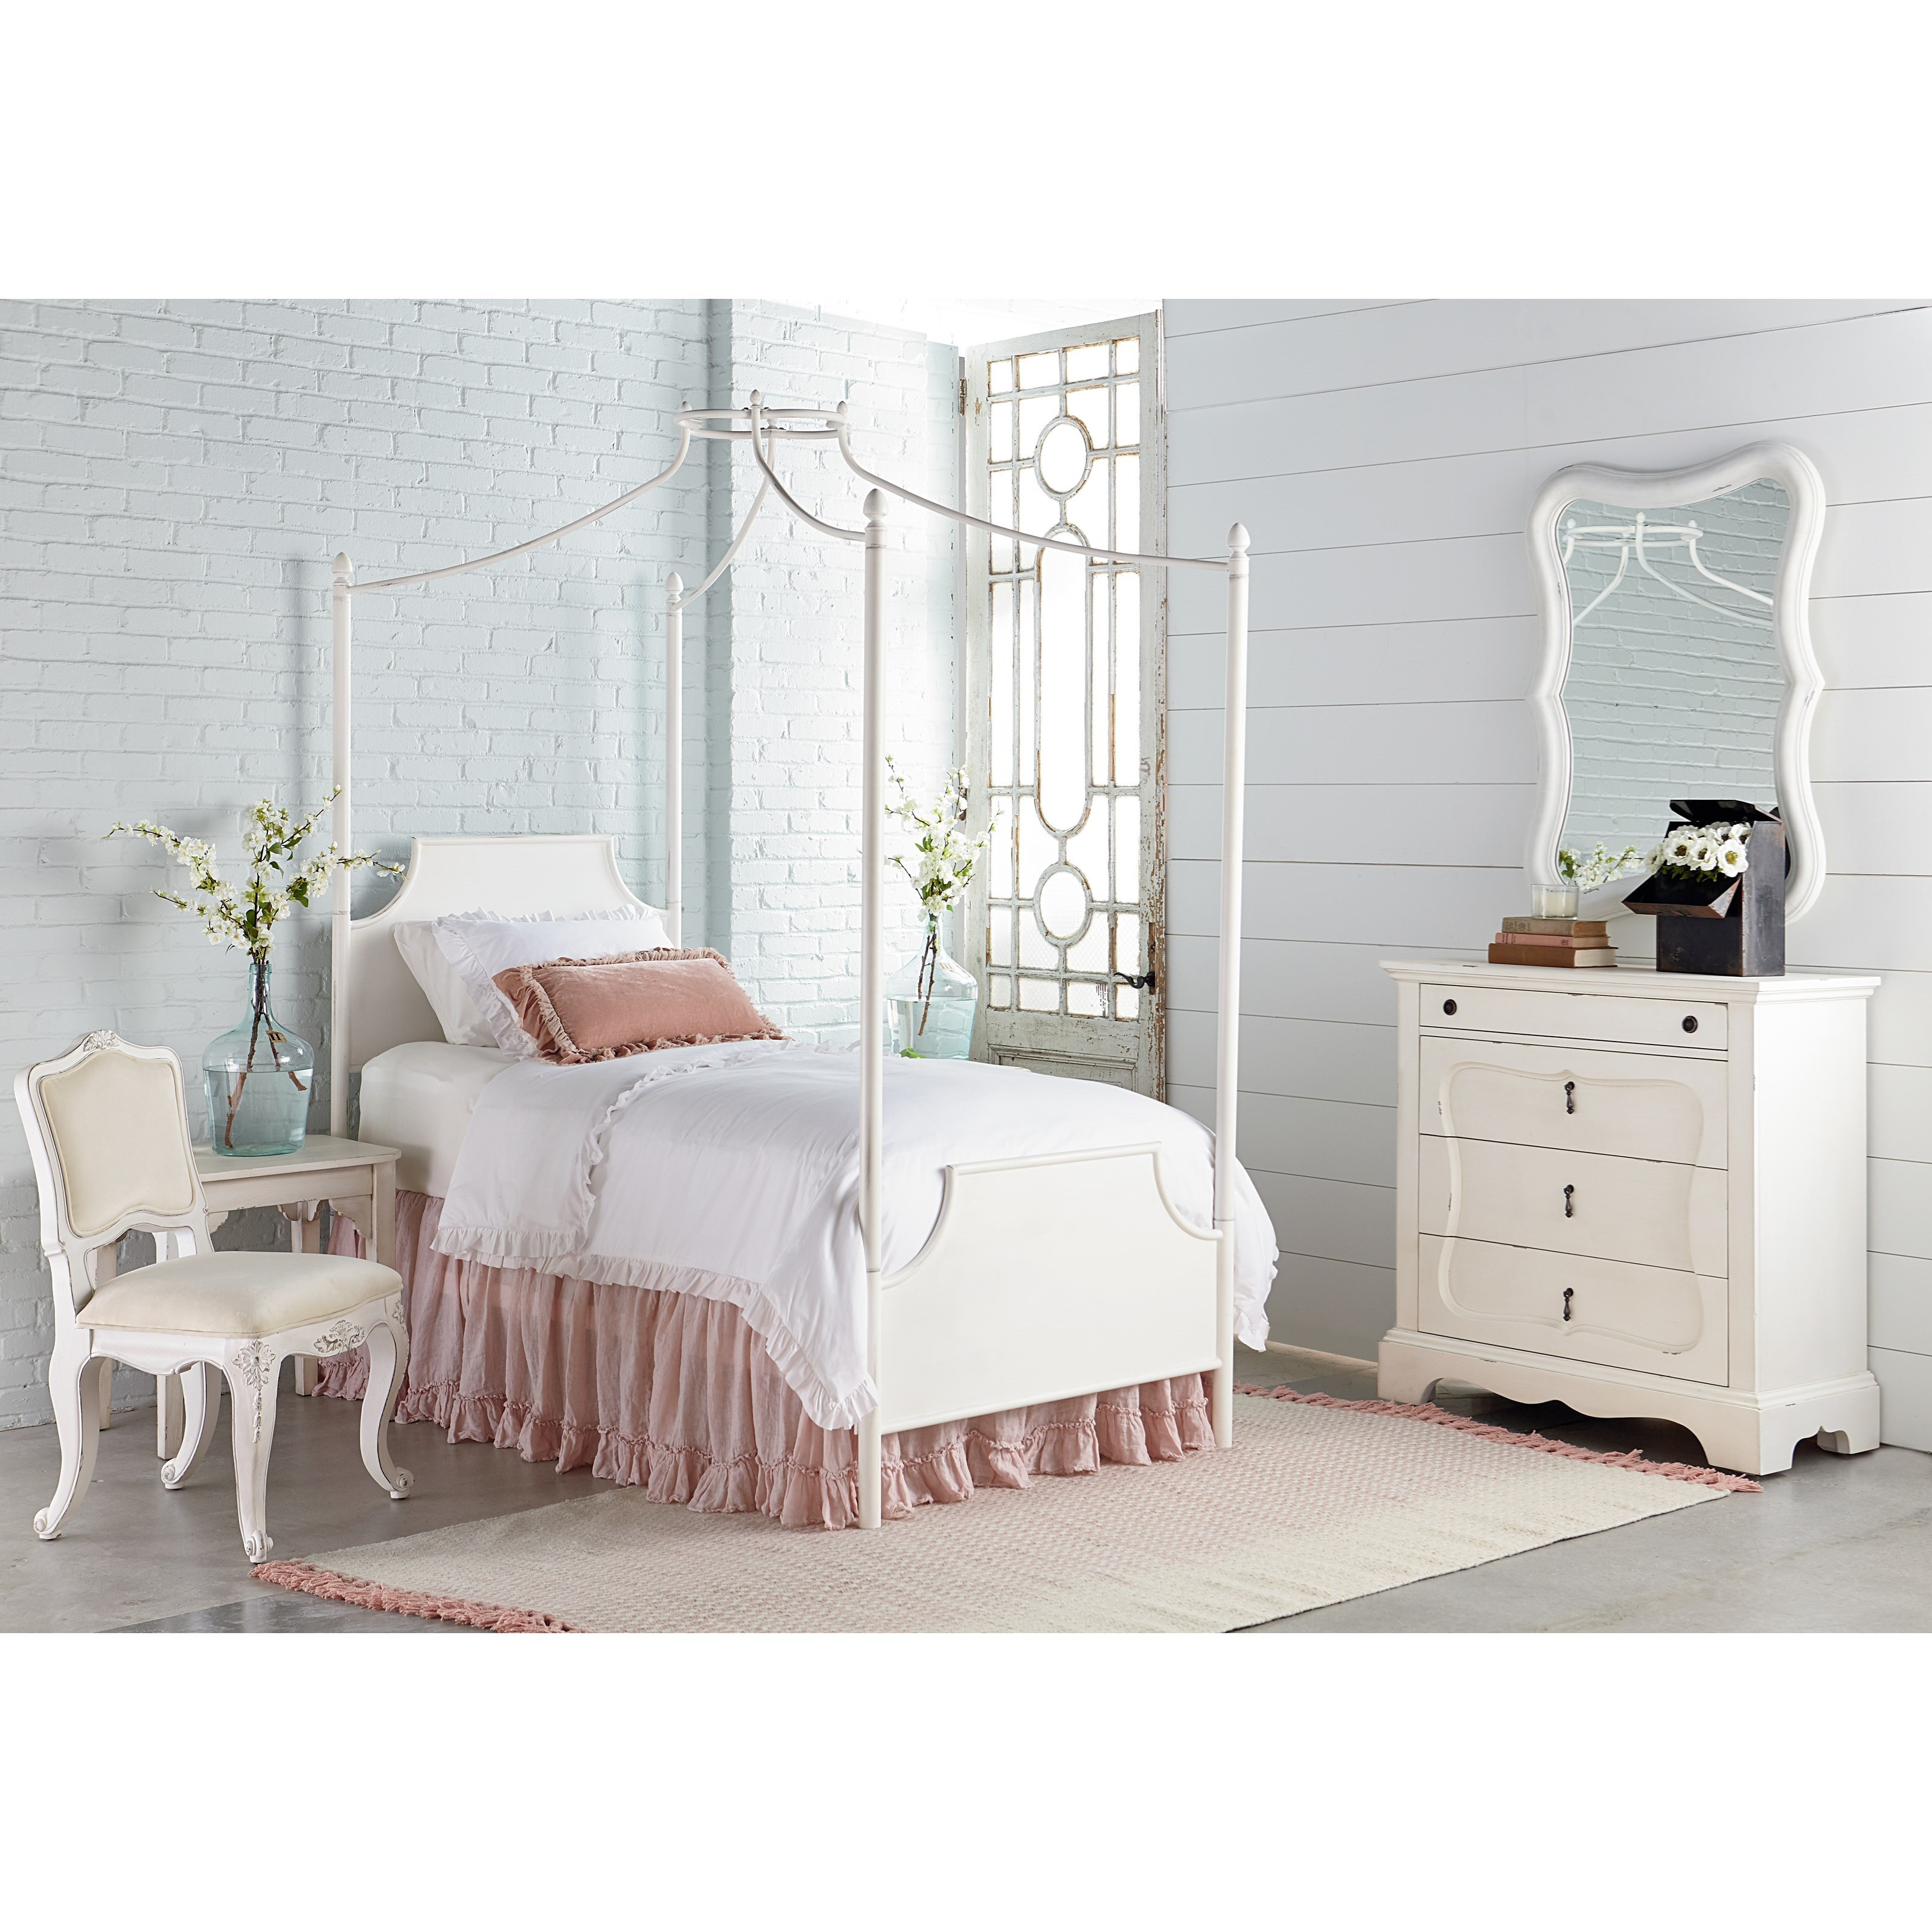 Magnolia home by joanna gaines traditional manor metal - Joanna gaines bedding collection ...